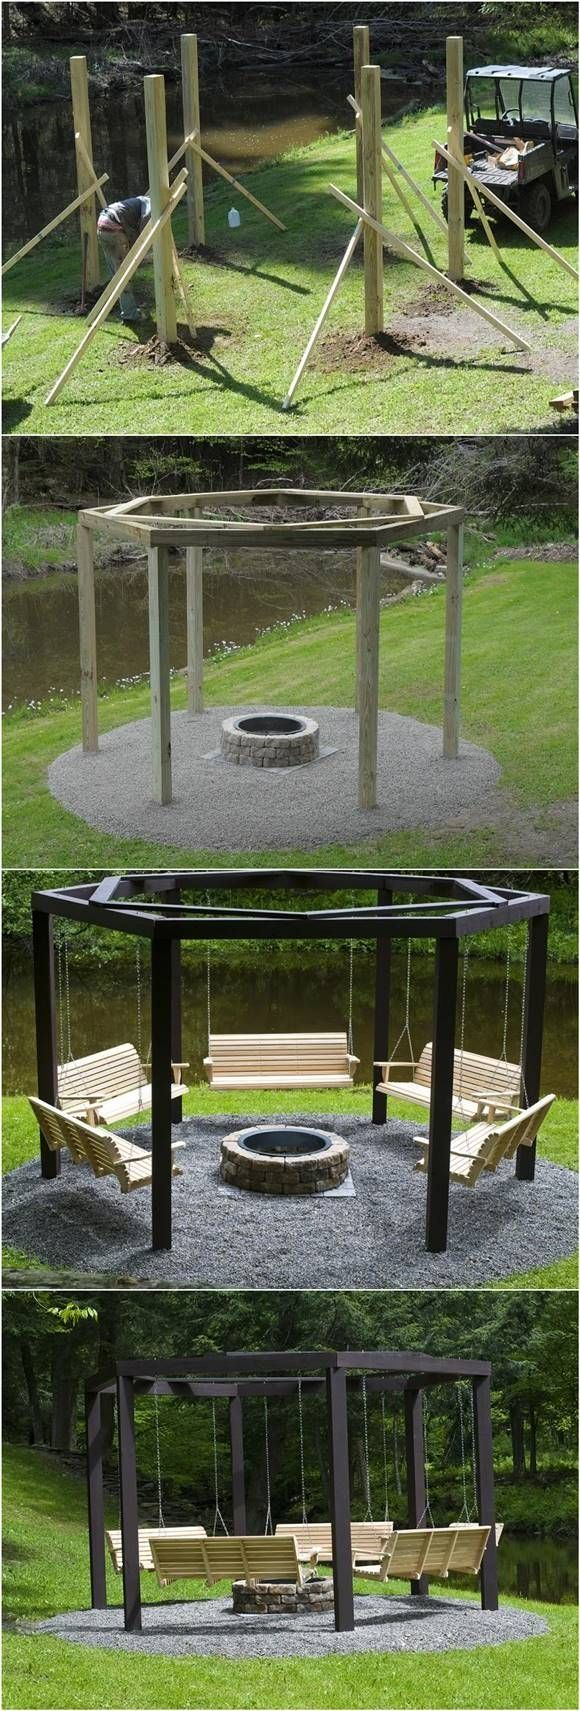 DIY Backyard Fire Pit with Swing Seats #backyard #home_improvement by Jinx62